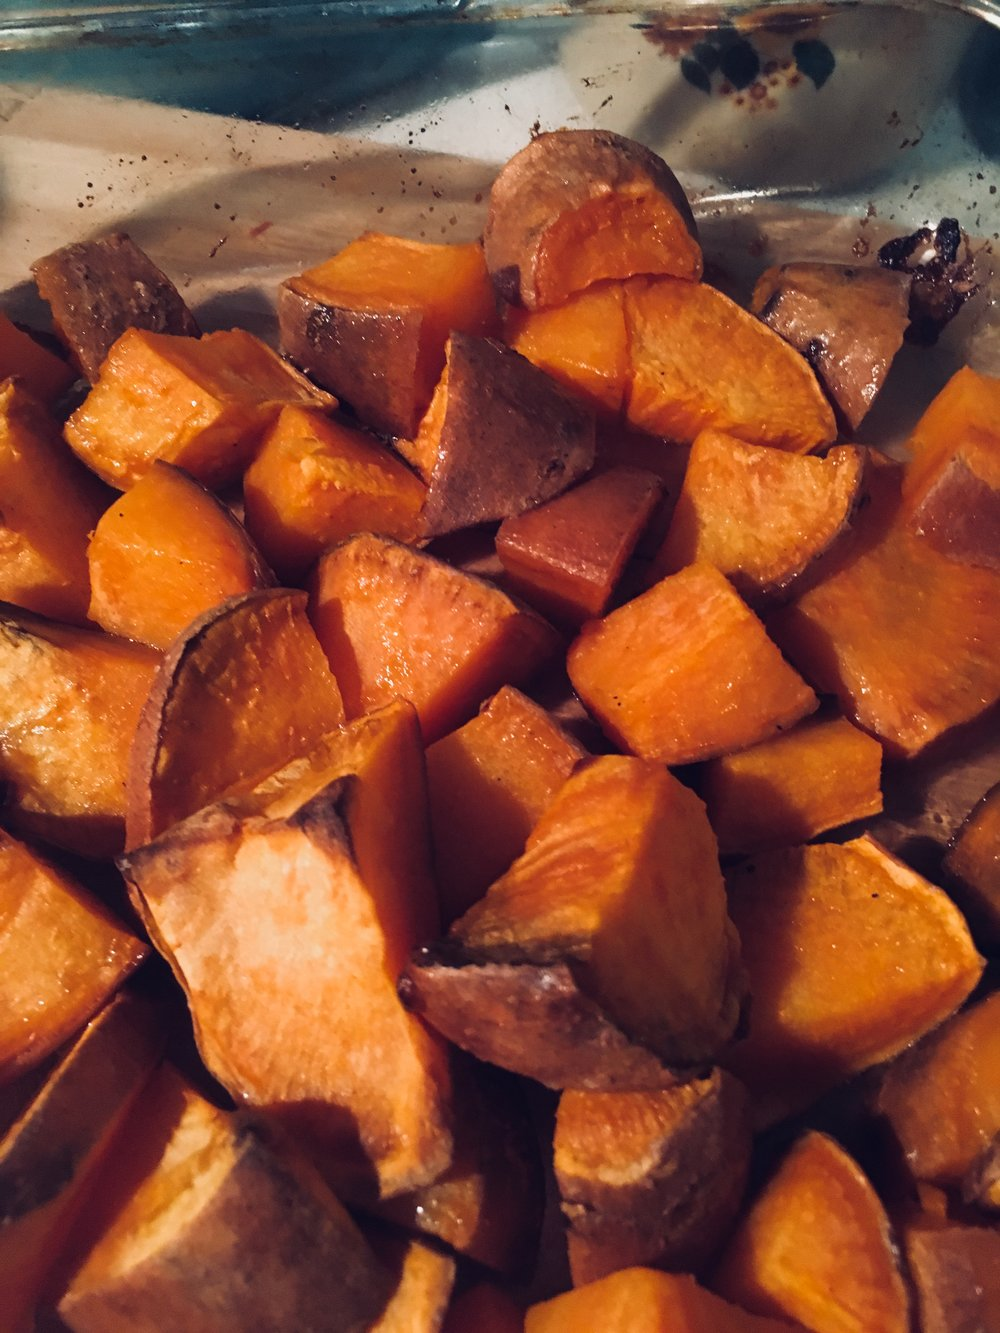 Roast it - have your oven nice and hot at 190 degrees, since the caramelisation of the sweet potato adds the flavour. The extra high heat, fan forced oven will ensure you get rid of the steam forming in the oven to ensure the nice caramelised flavour instead when the sweet potato browns. Give it 50 - 60 min and check till you are satisfied with colour and flavour.